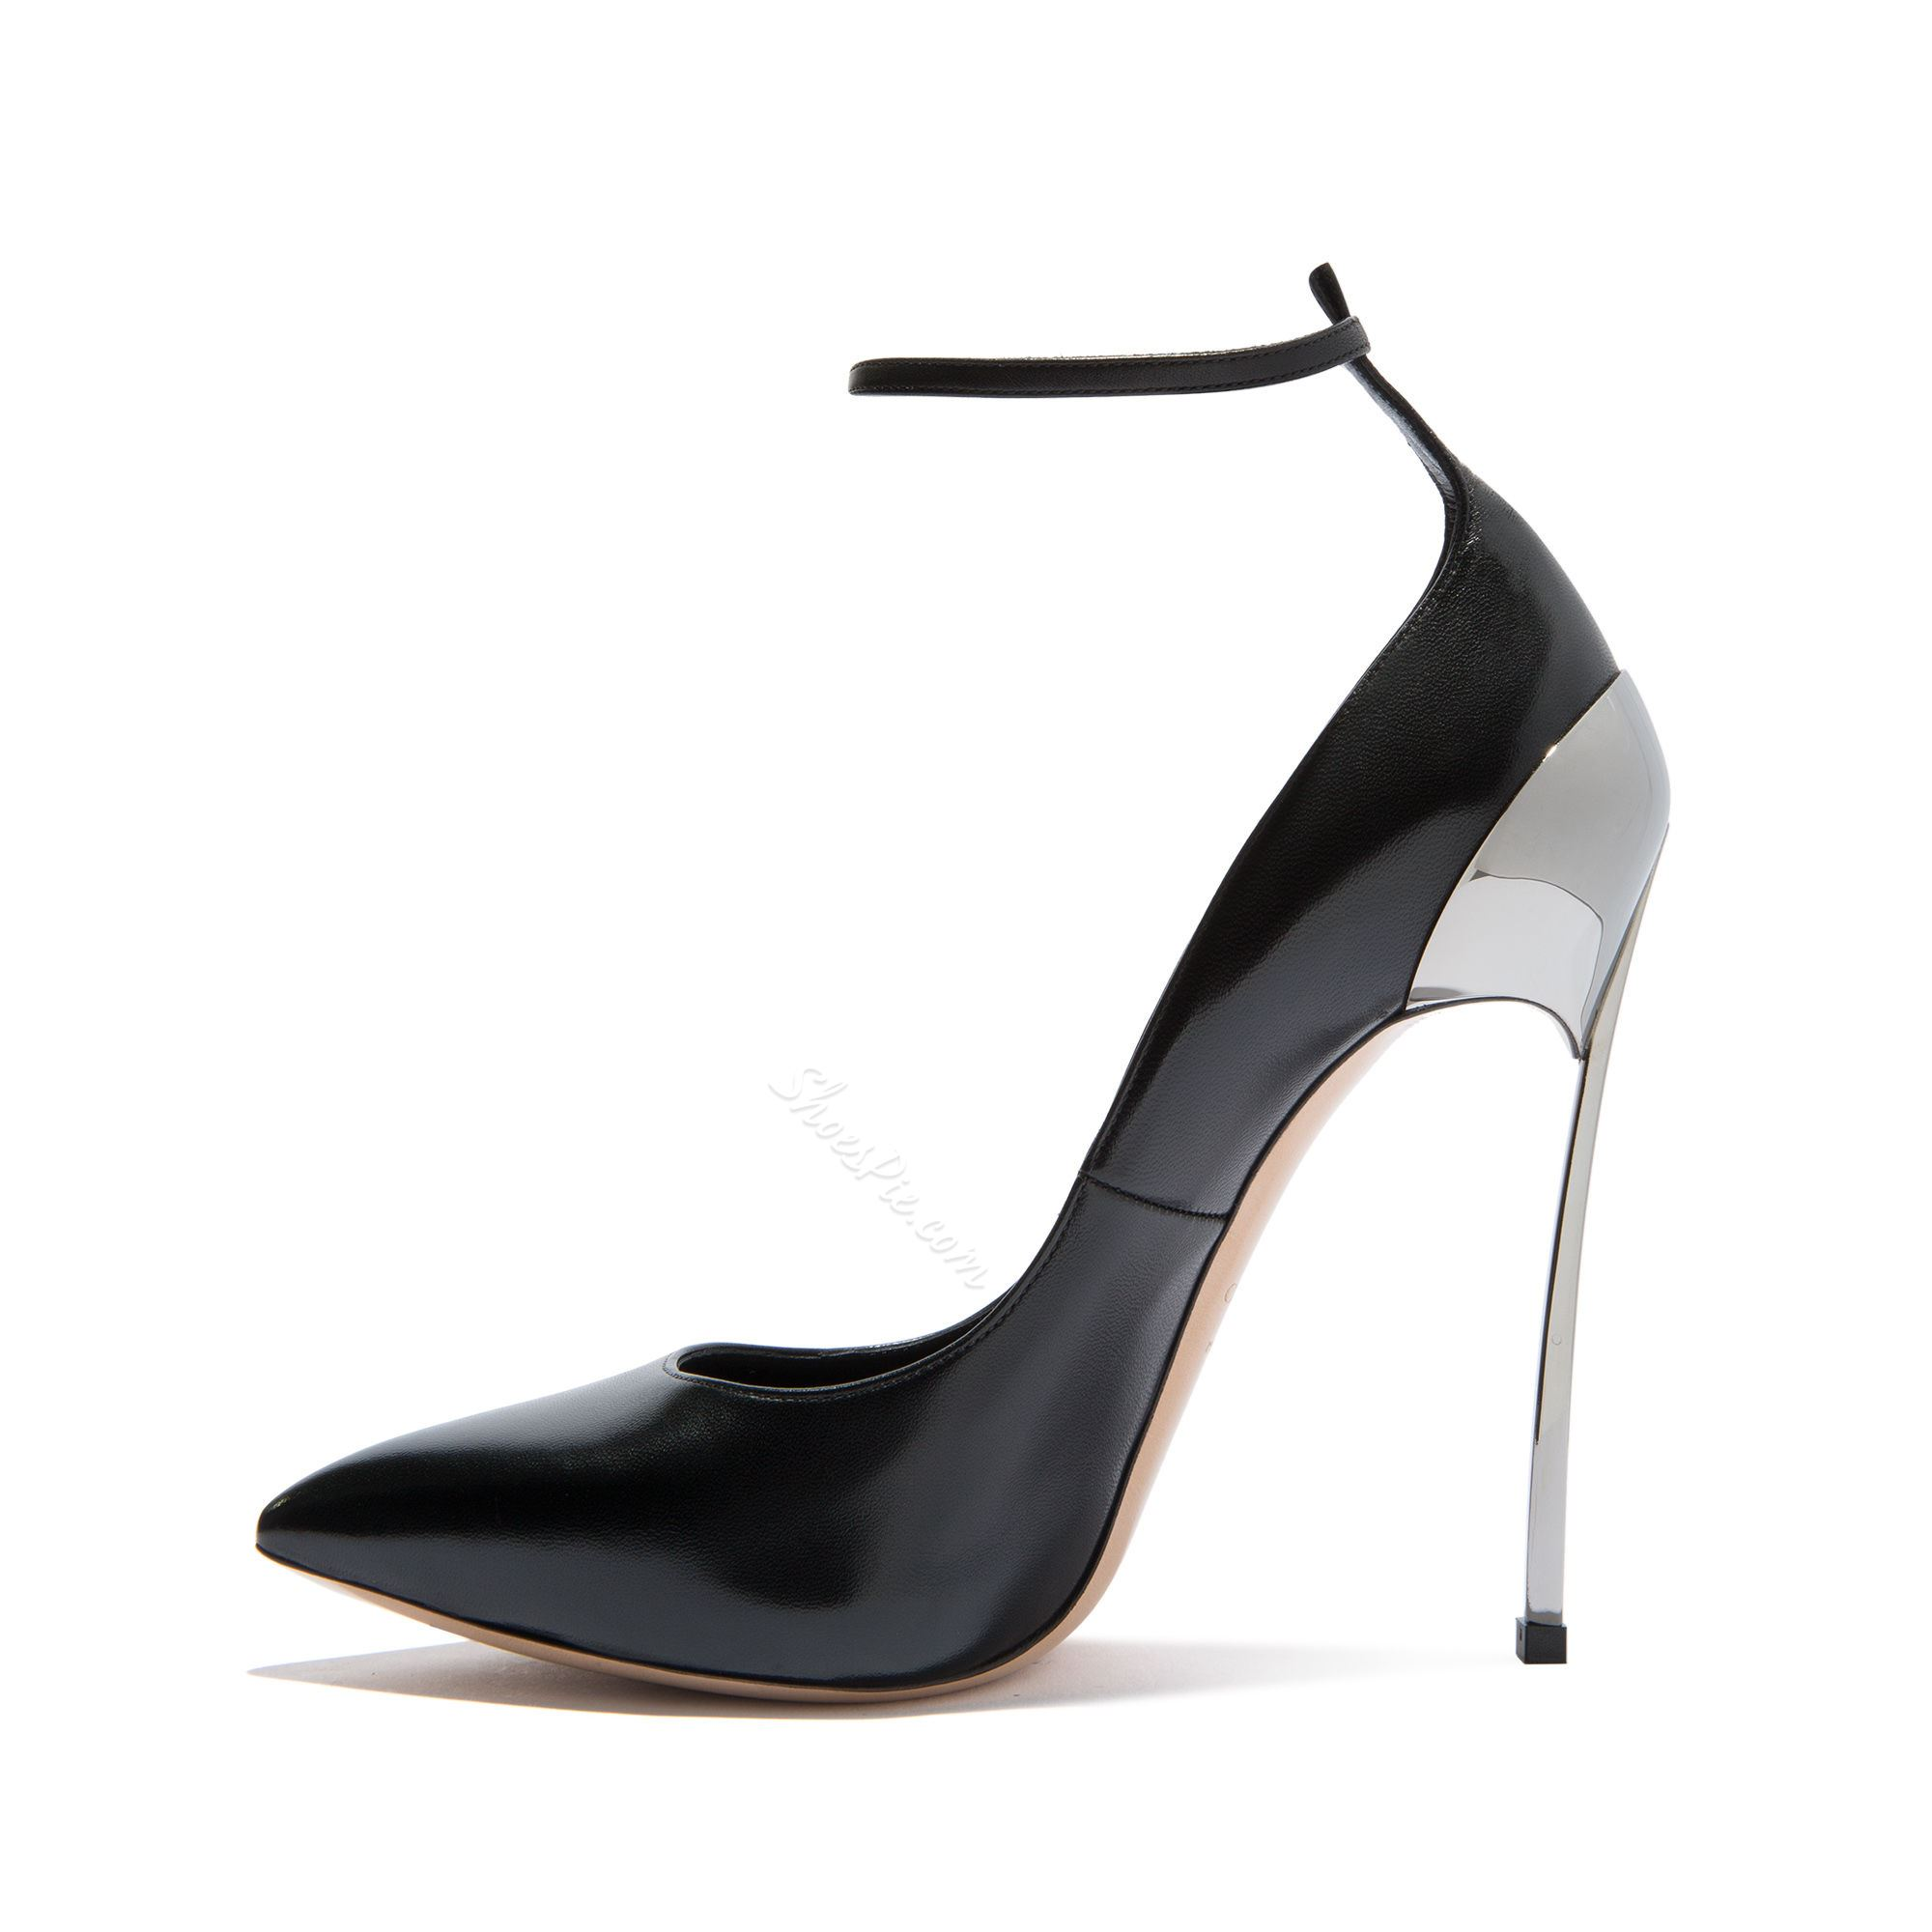 Black Pointed Toe Stiletto Heels